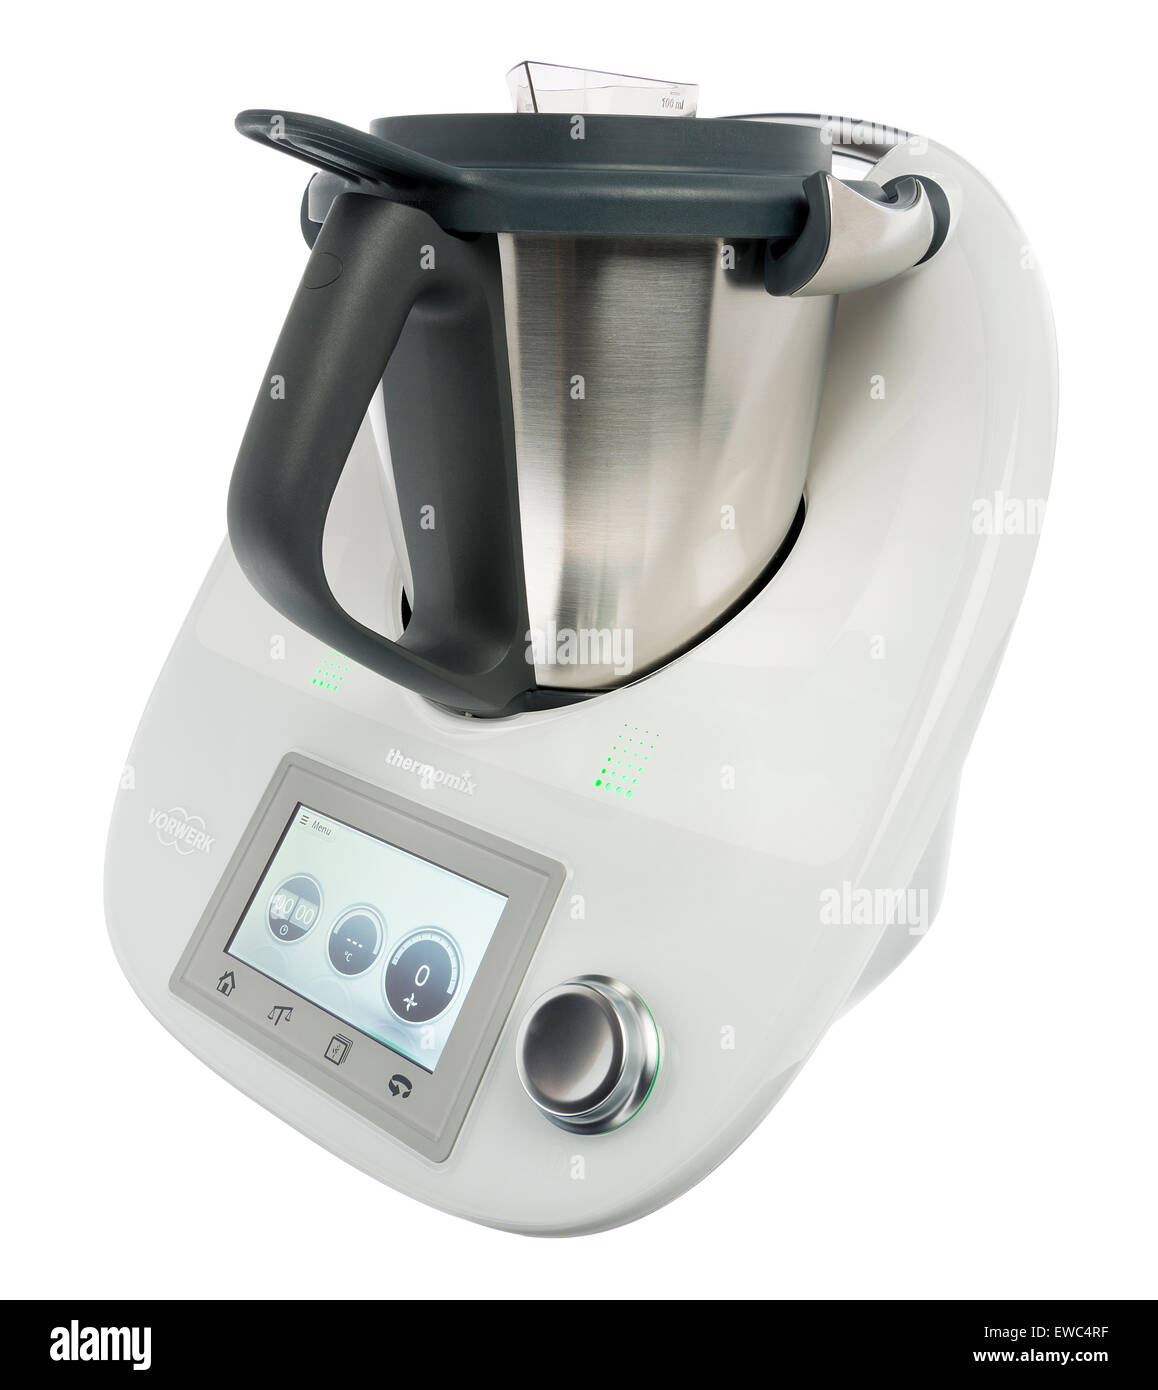 Thermomix kitchen device. Food processor. Kitchen appliance Stock ...